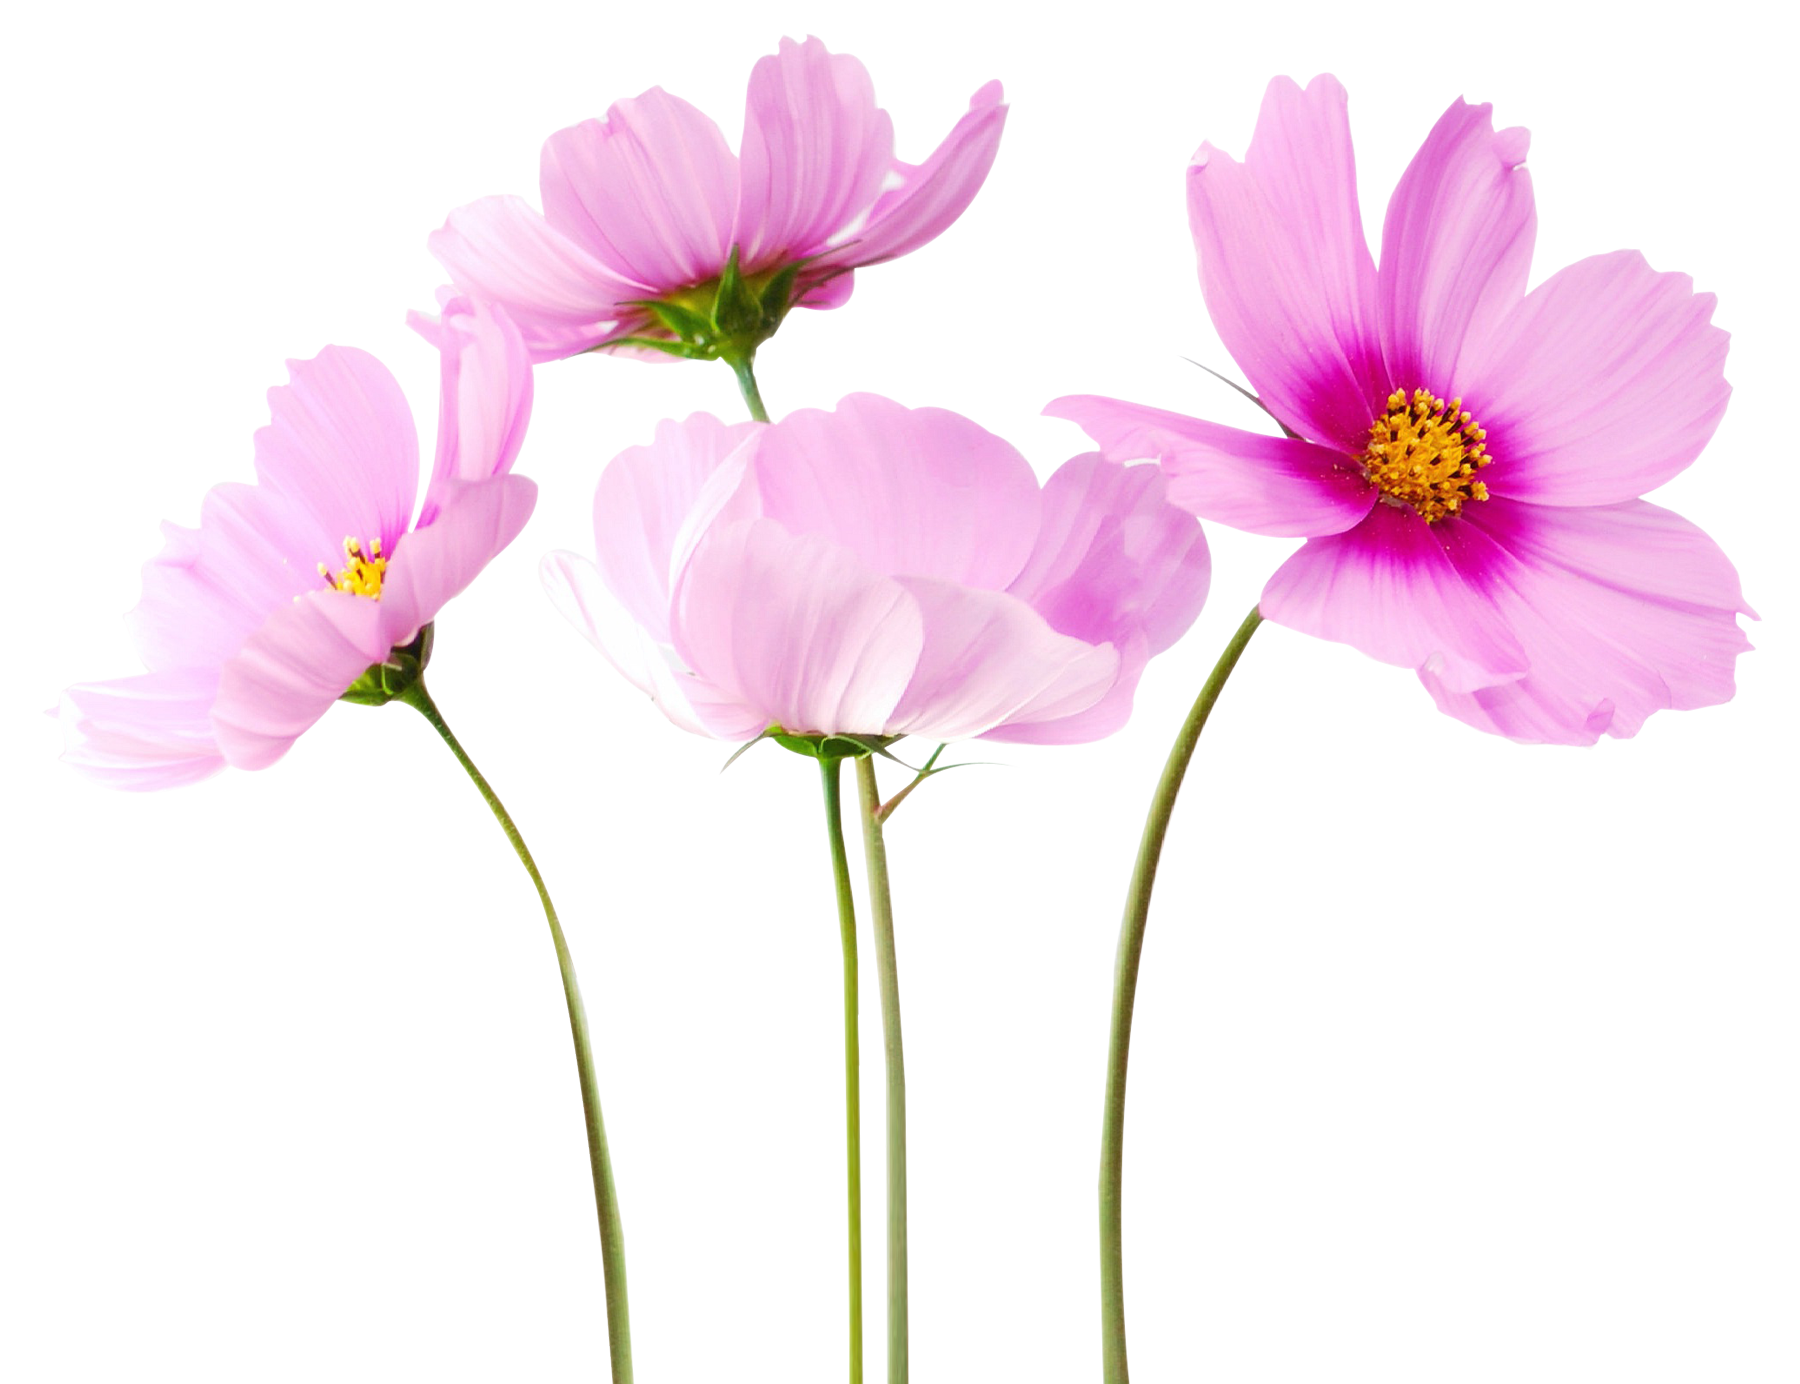 Cosmea flower image purepng. Transparent flowers png banner freeuse library